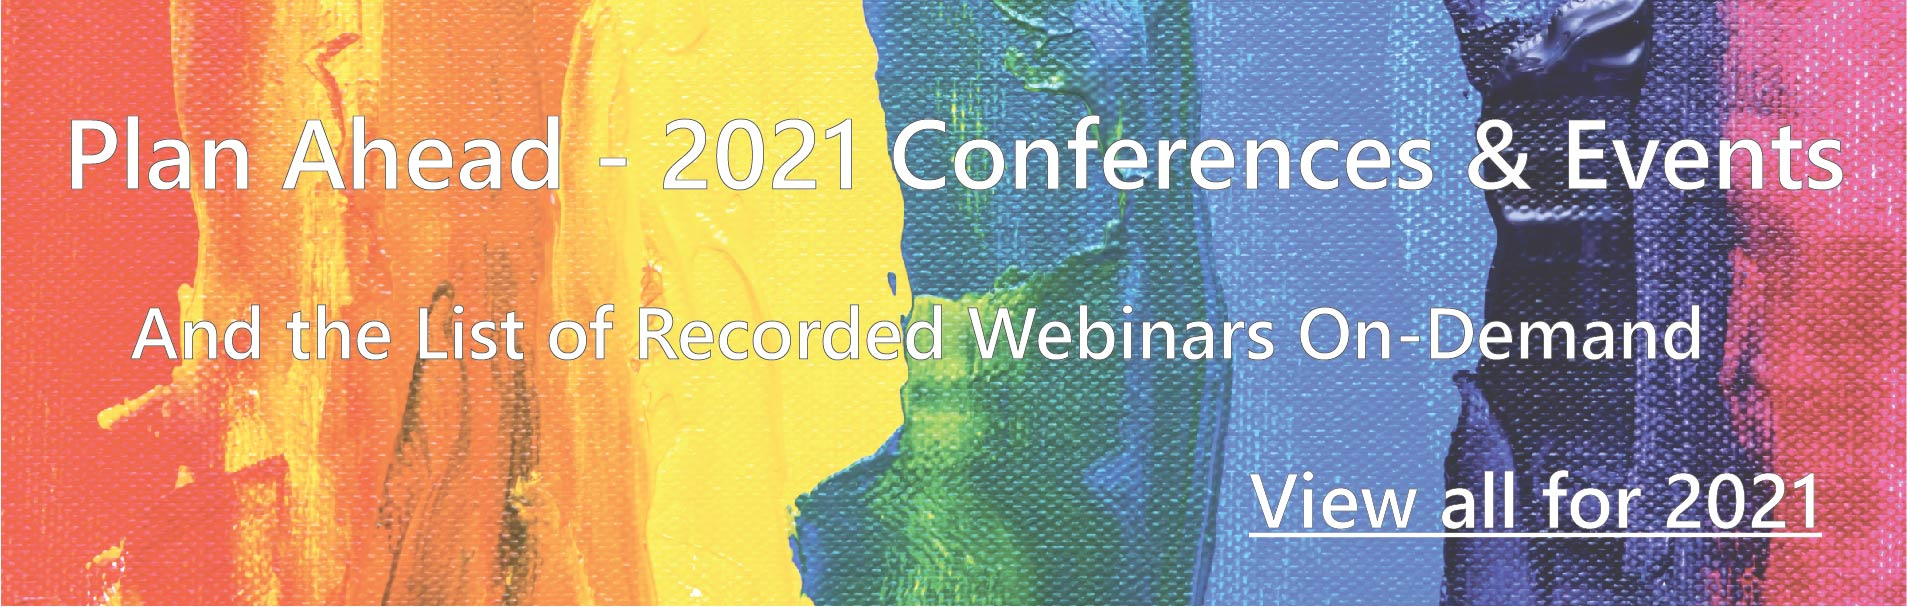 Plan Ahead - 2021 Conferences and Events - And the List of Recorded Webinars On-Demand. View all for 2021